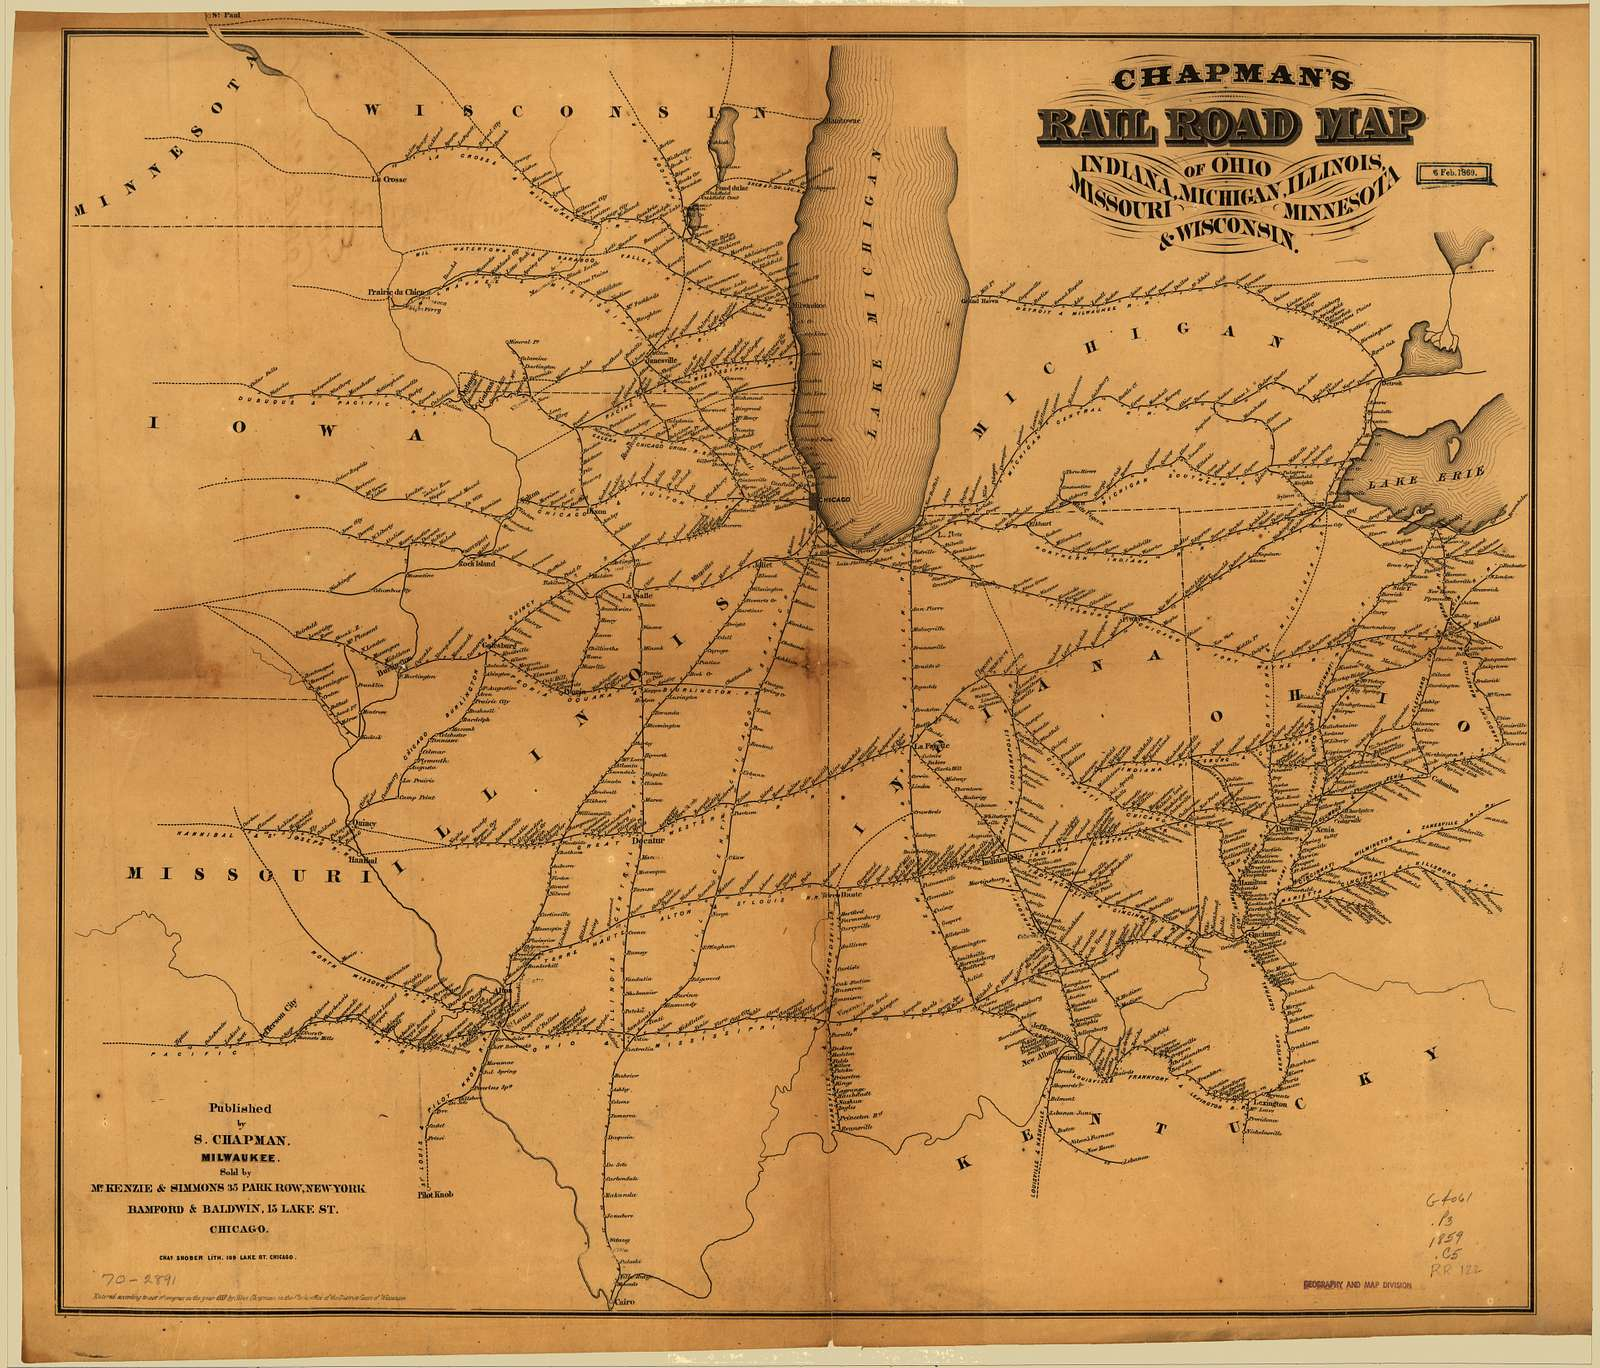 Chapman's rail road map of Ohio, Indiana, Michigan, Illinois, Missouri, Minnesota, & Wisconsin.